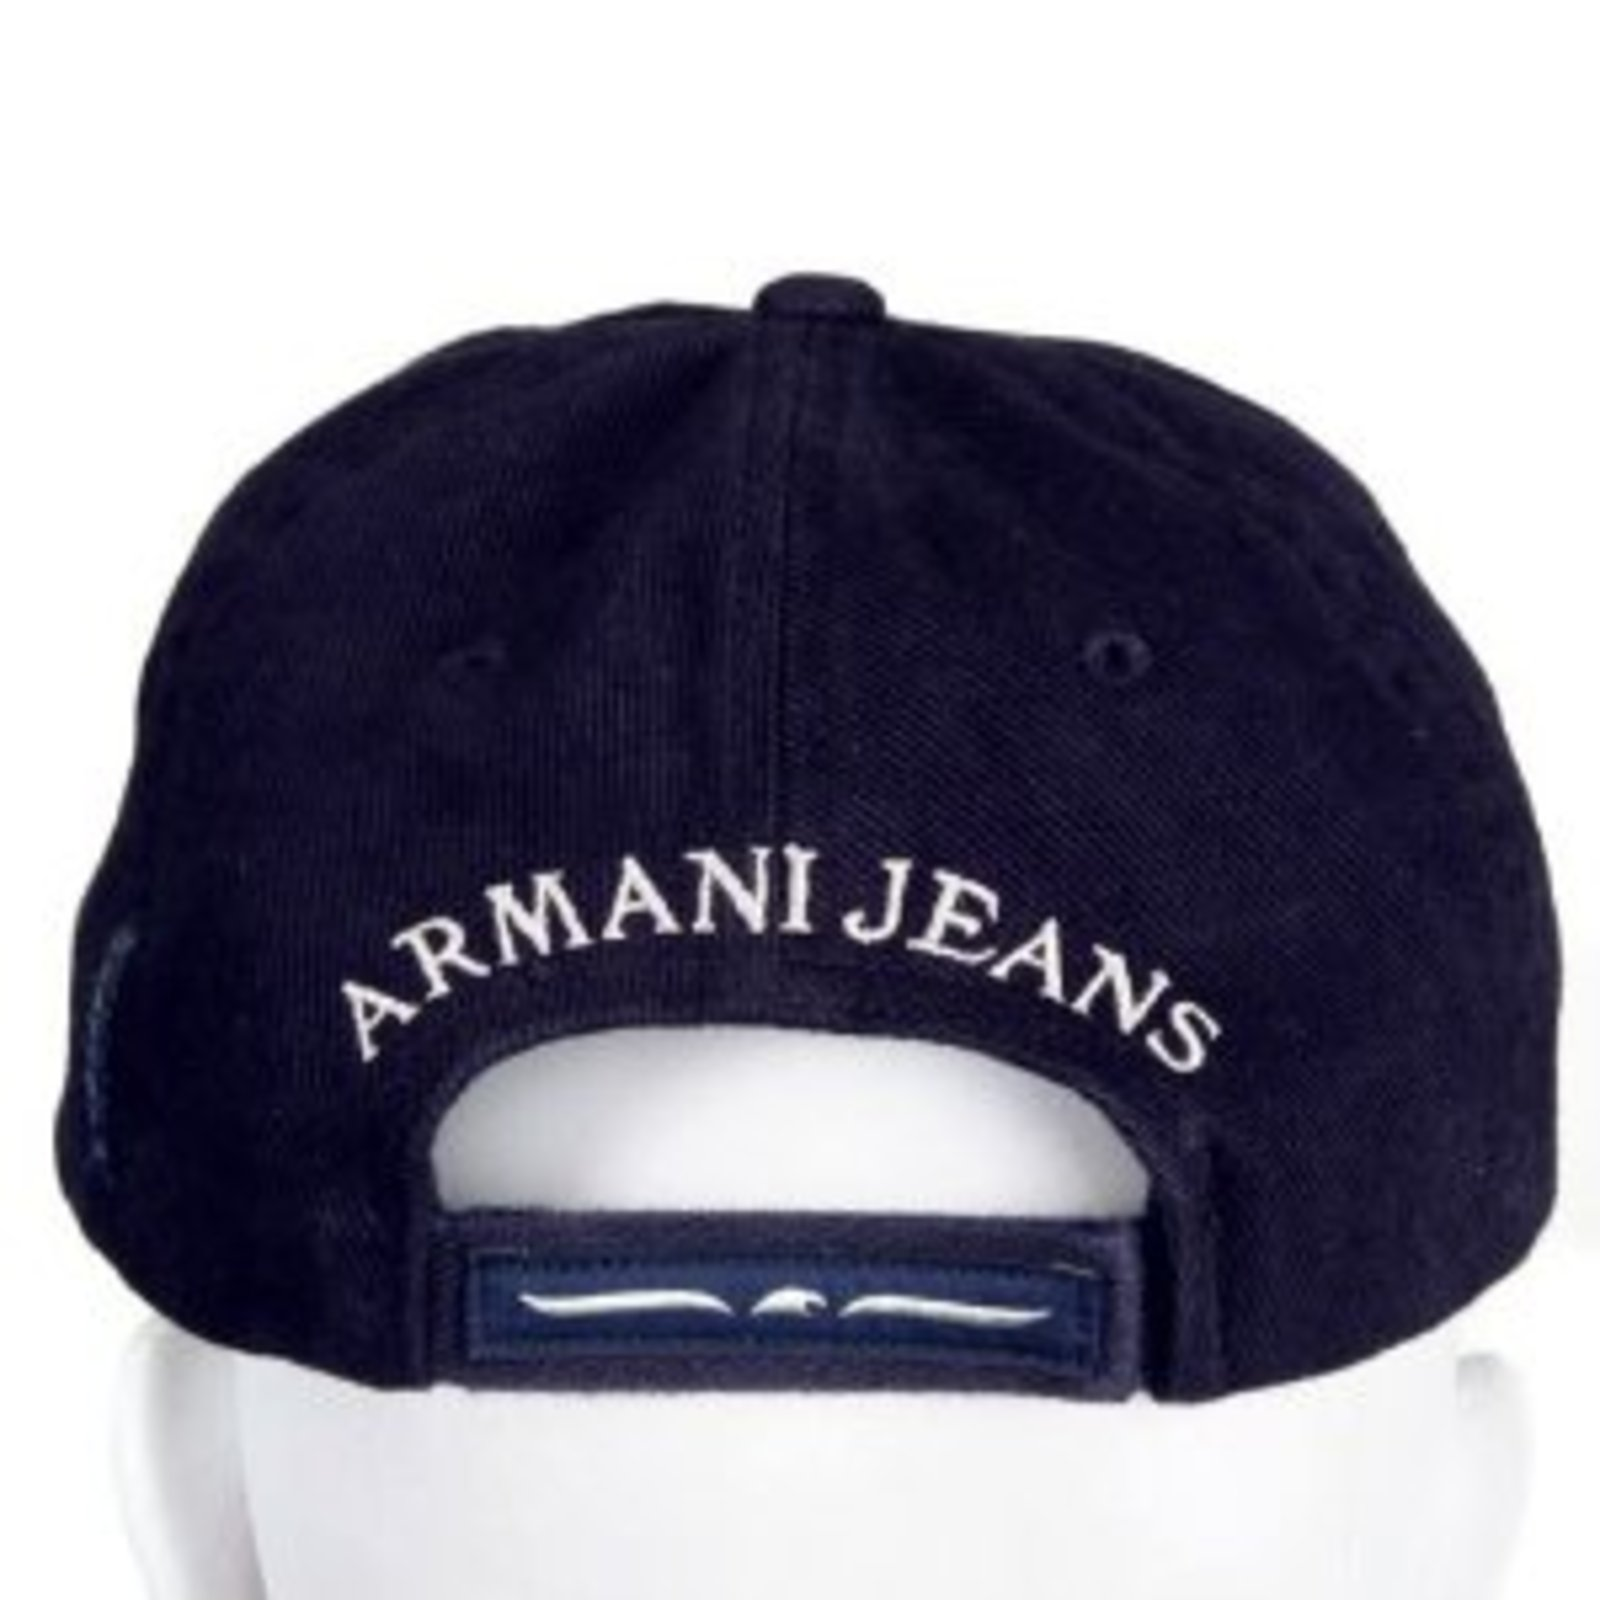 fbd7eaedc45 Armani Jeans Navy Cap G640133 at Togged Clothing